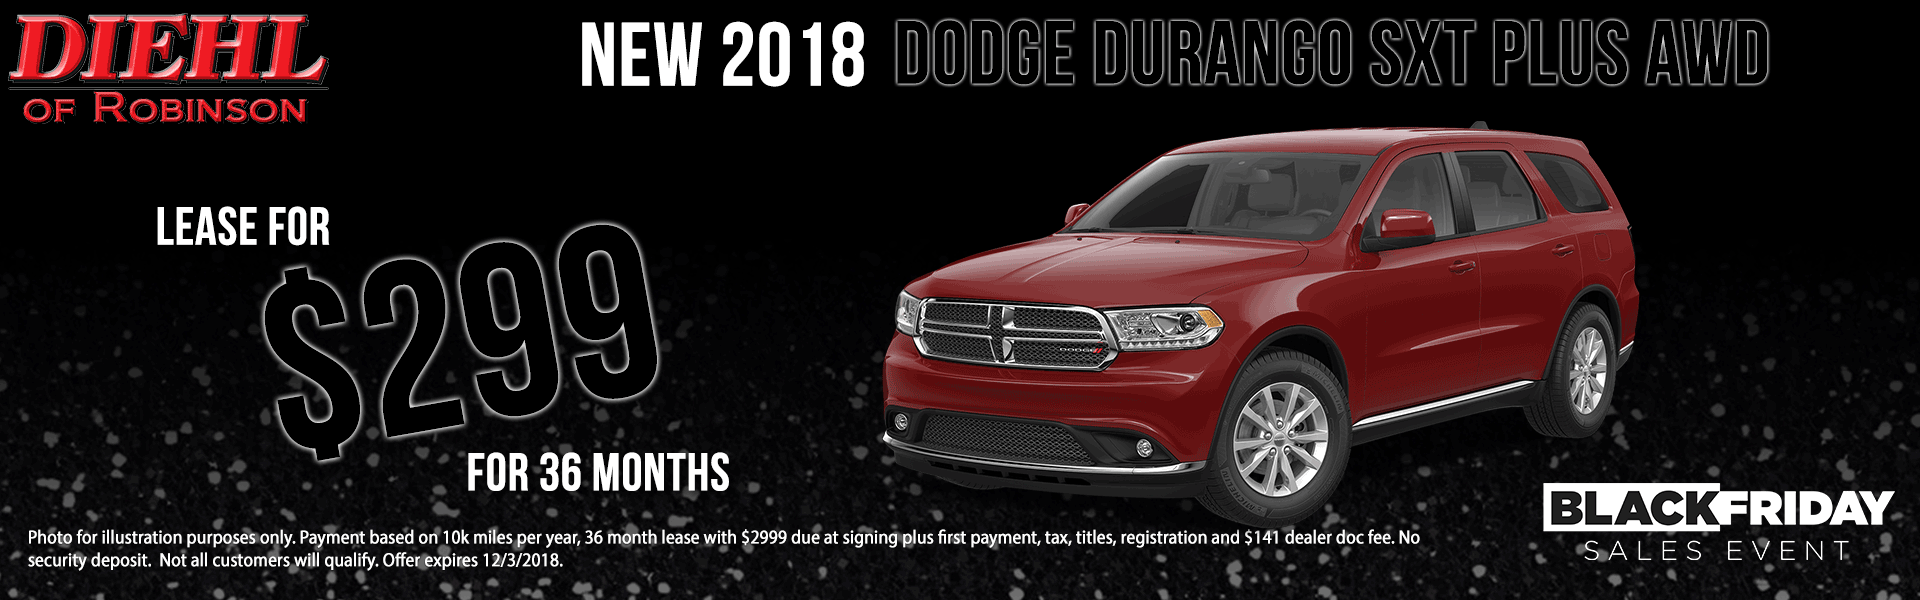 Diehl of Robinson Township. Chrysler jeep dodge ram New used service collision parts and accessories. NEW 2018 DODGE DURANGO SXT PLUS AWD